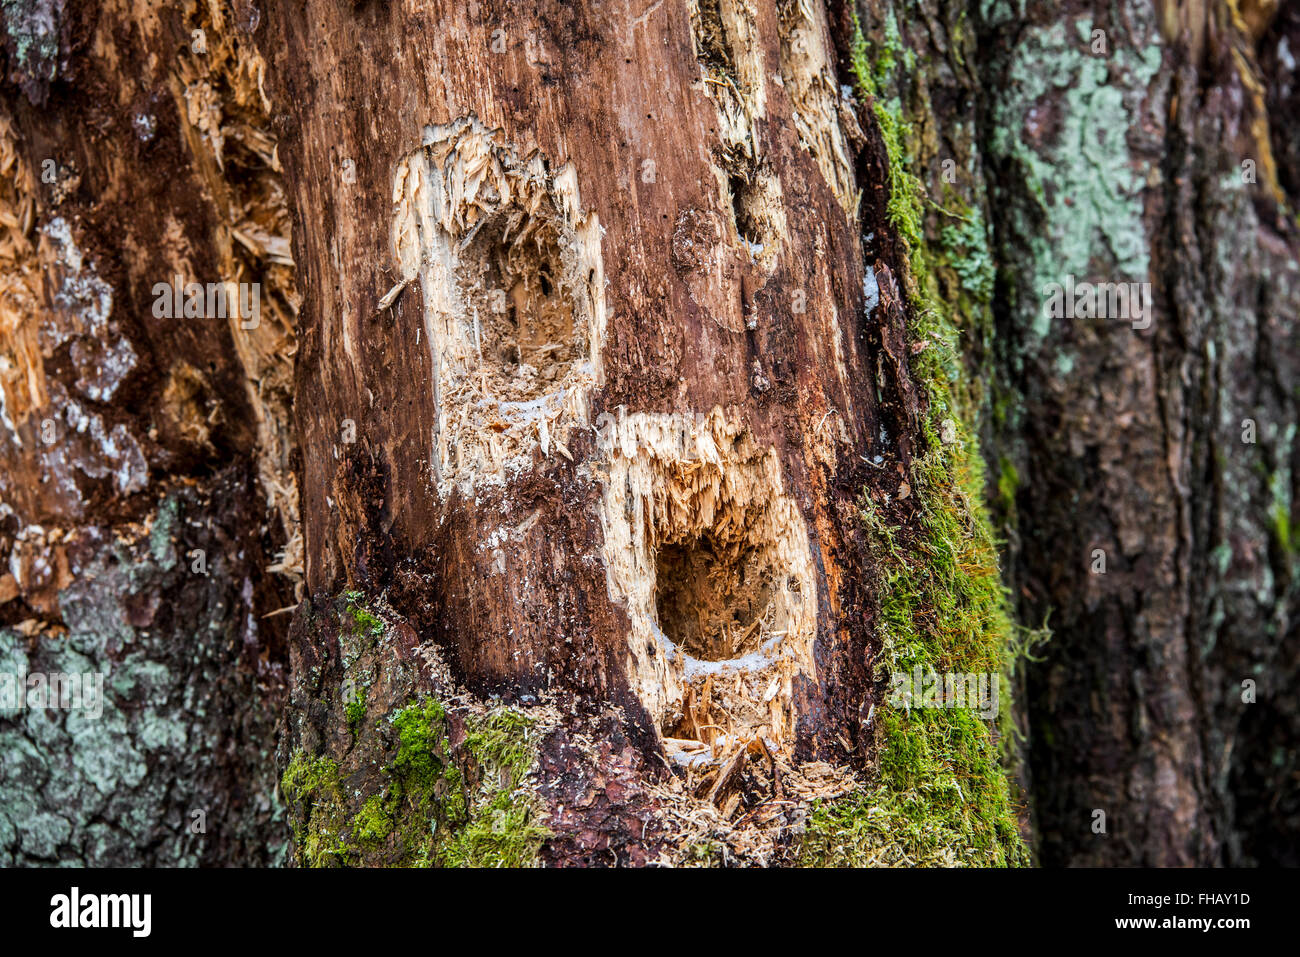 Several holes in tree trunk hammered by woodpecker looking for grubs in dead wood in forest - Stock Image